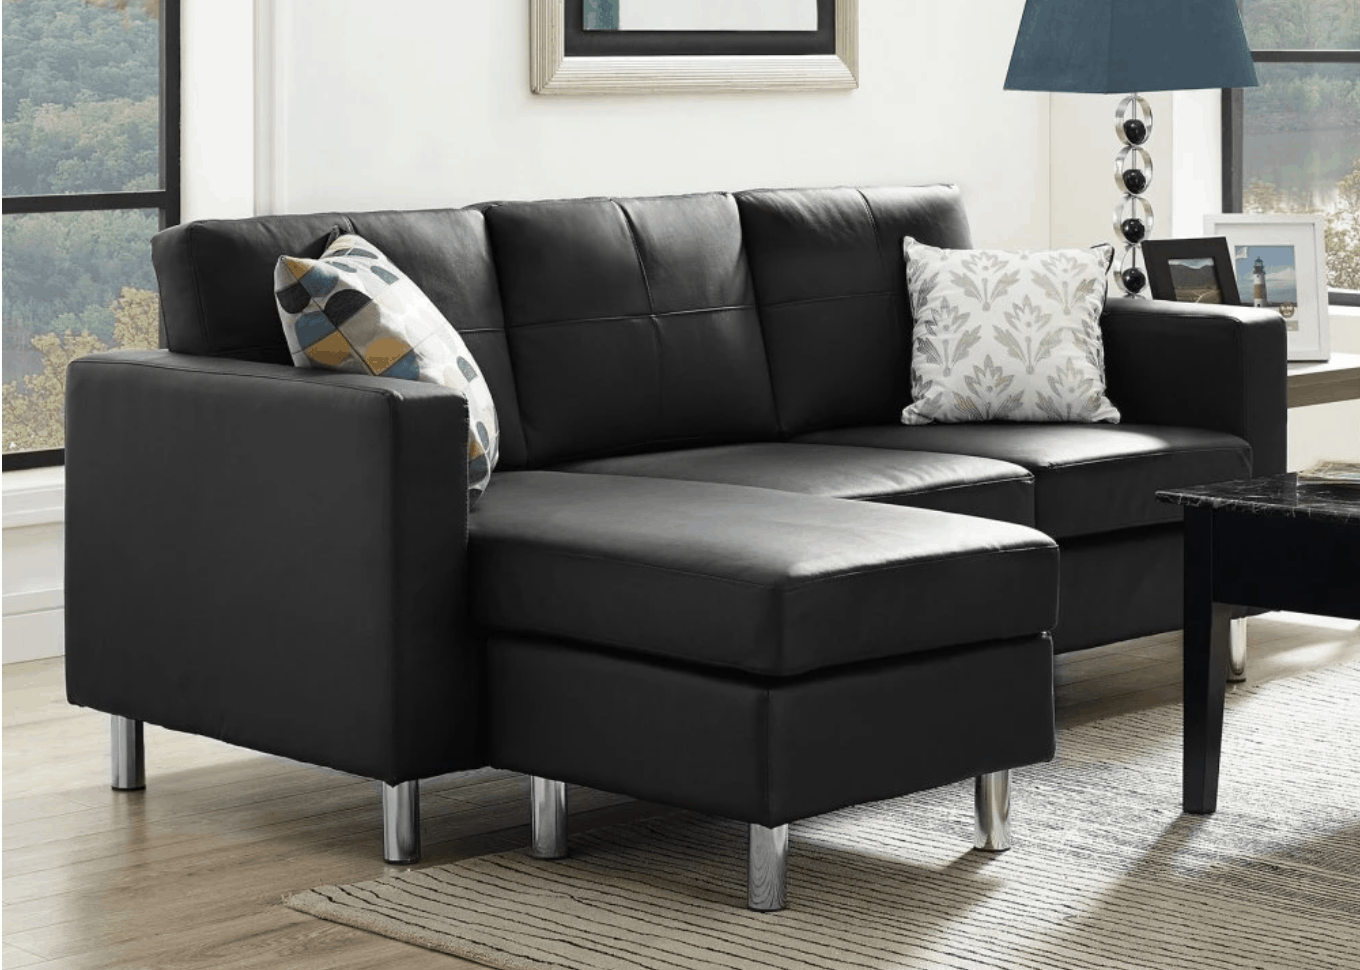 75 modern sectional sofas for small spaces 2018 for Sectional couch in small room